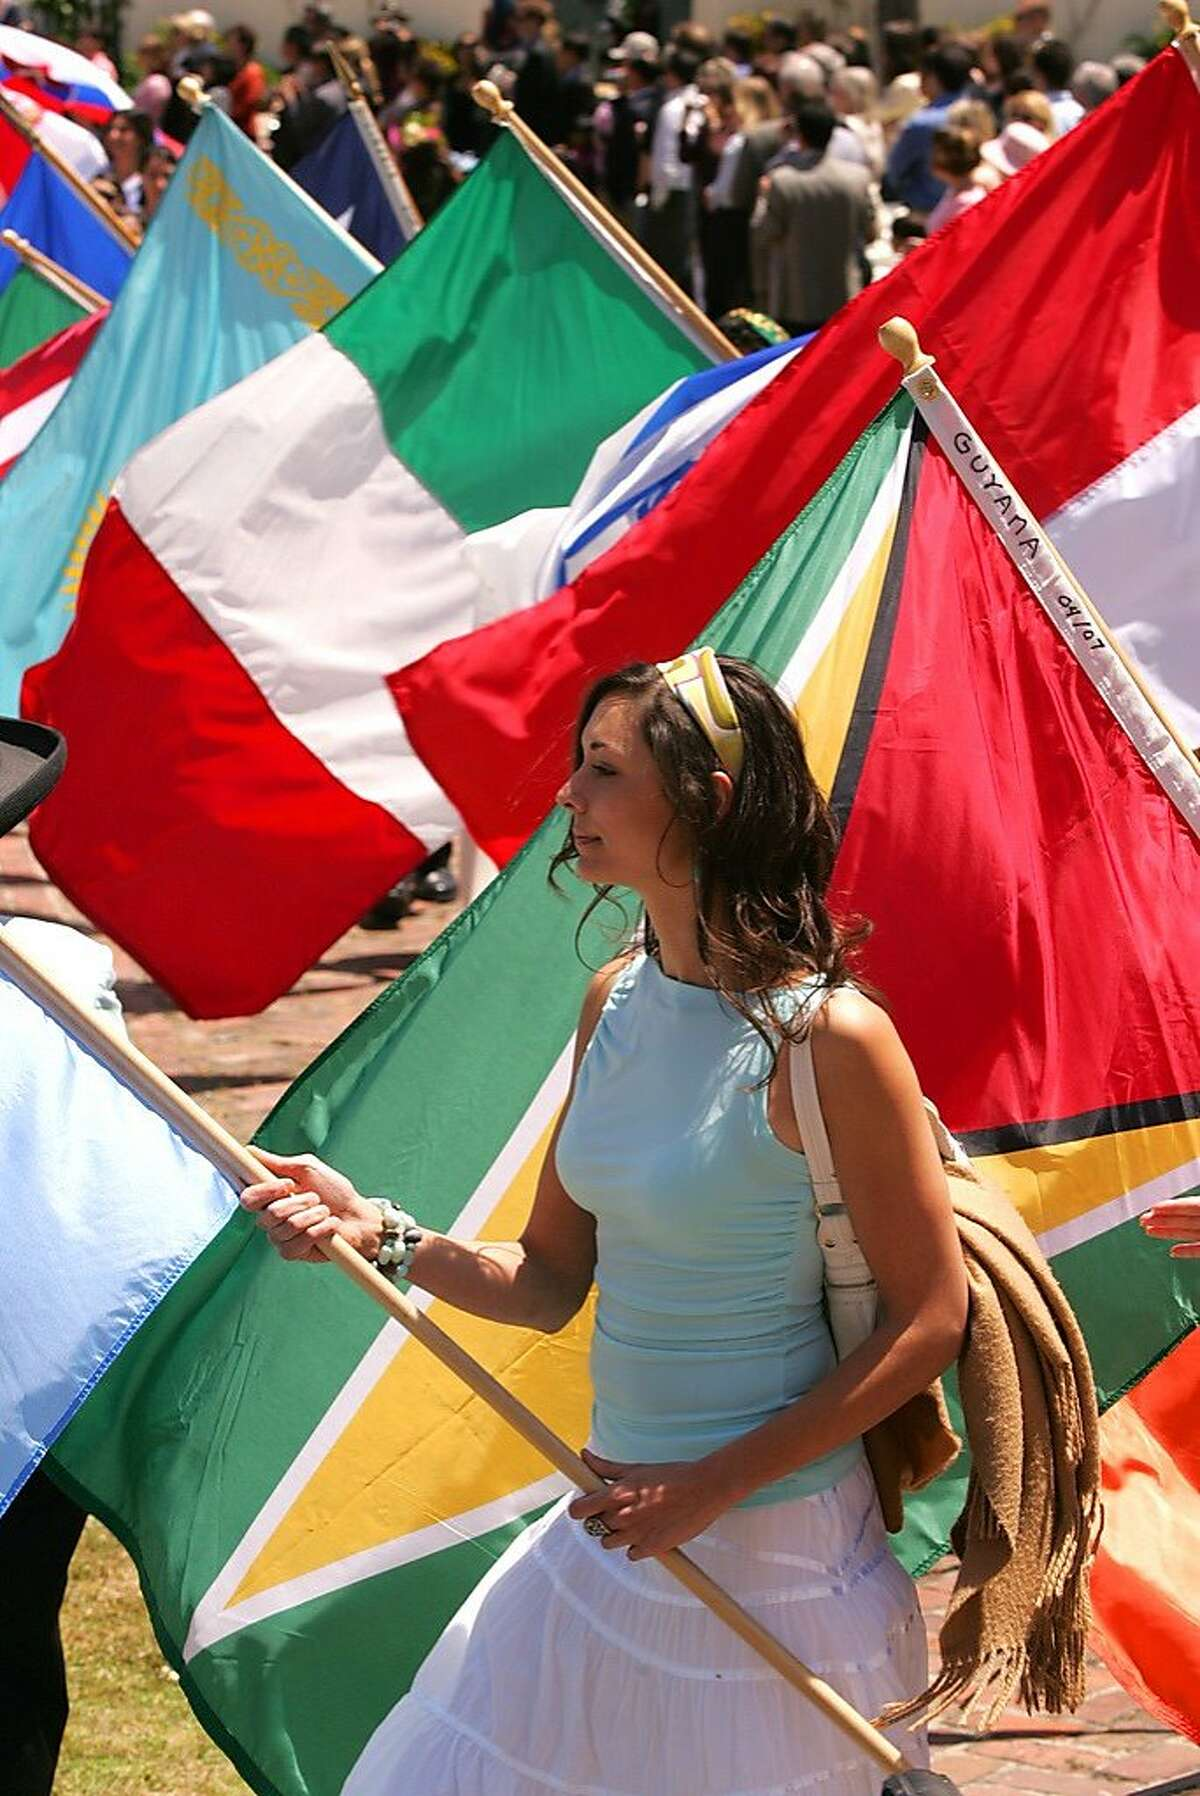 A participant carries one of the flags on display for the Language Capital of the World Cultural Festival on May 2 in Monterey.